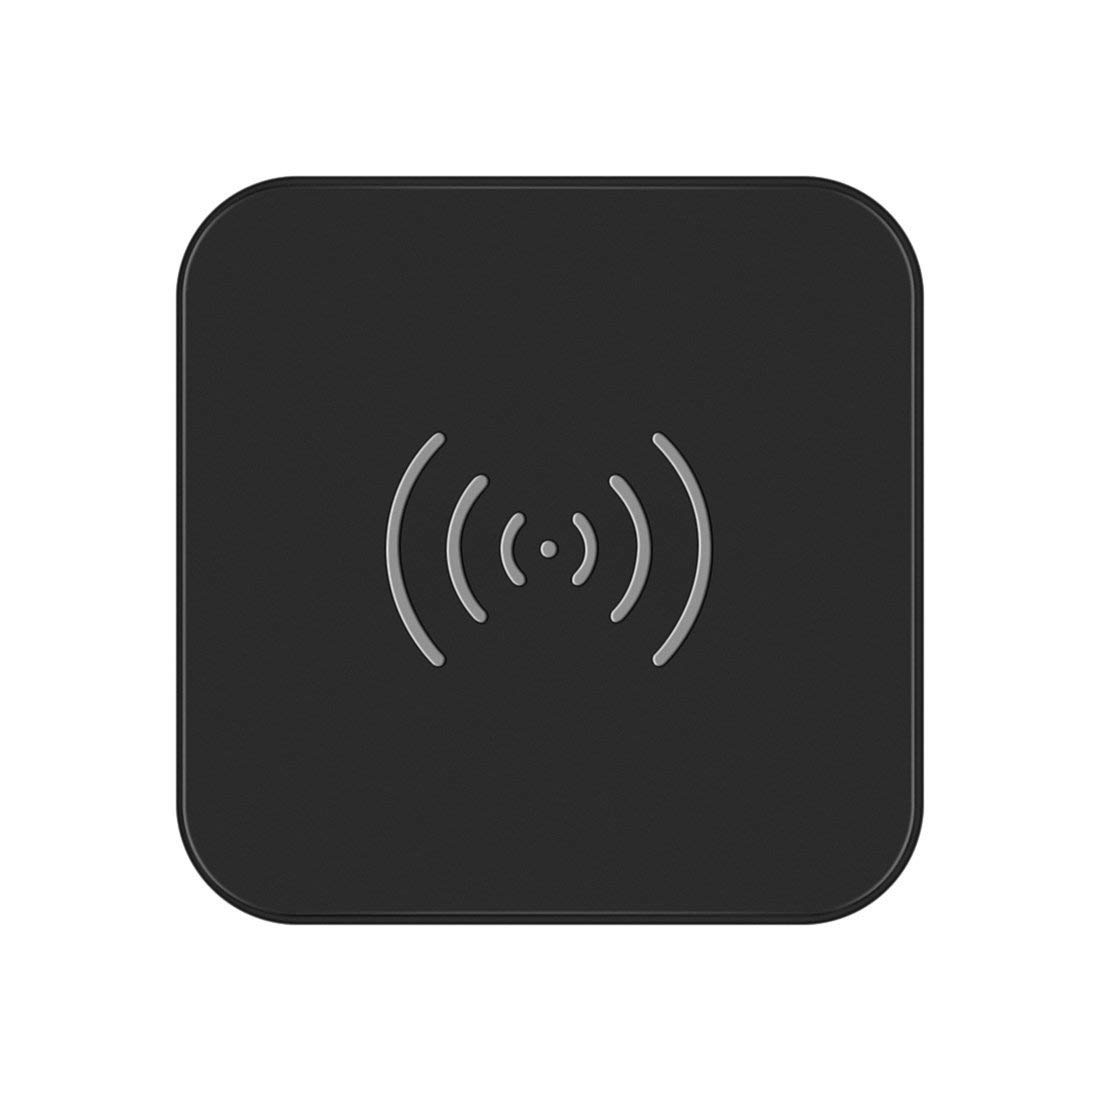 CHOETECH Wireless Charger, Qi Certified Wireless Charging Pad Compatible with iPhone XS Max/XS/XR/X/8/8 Plus, Samsung Galaxy Note 10/Note 10 Plus/S10/S10+/Note 9/S9/Note 8/S8, New AirPods and More by CHOETECH